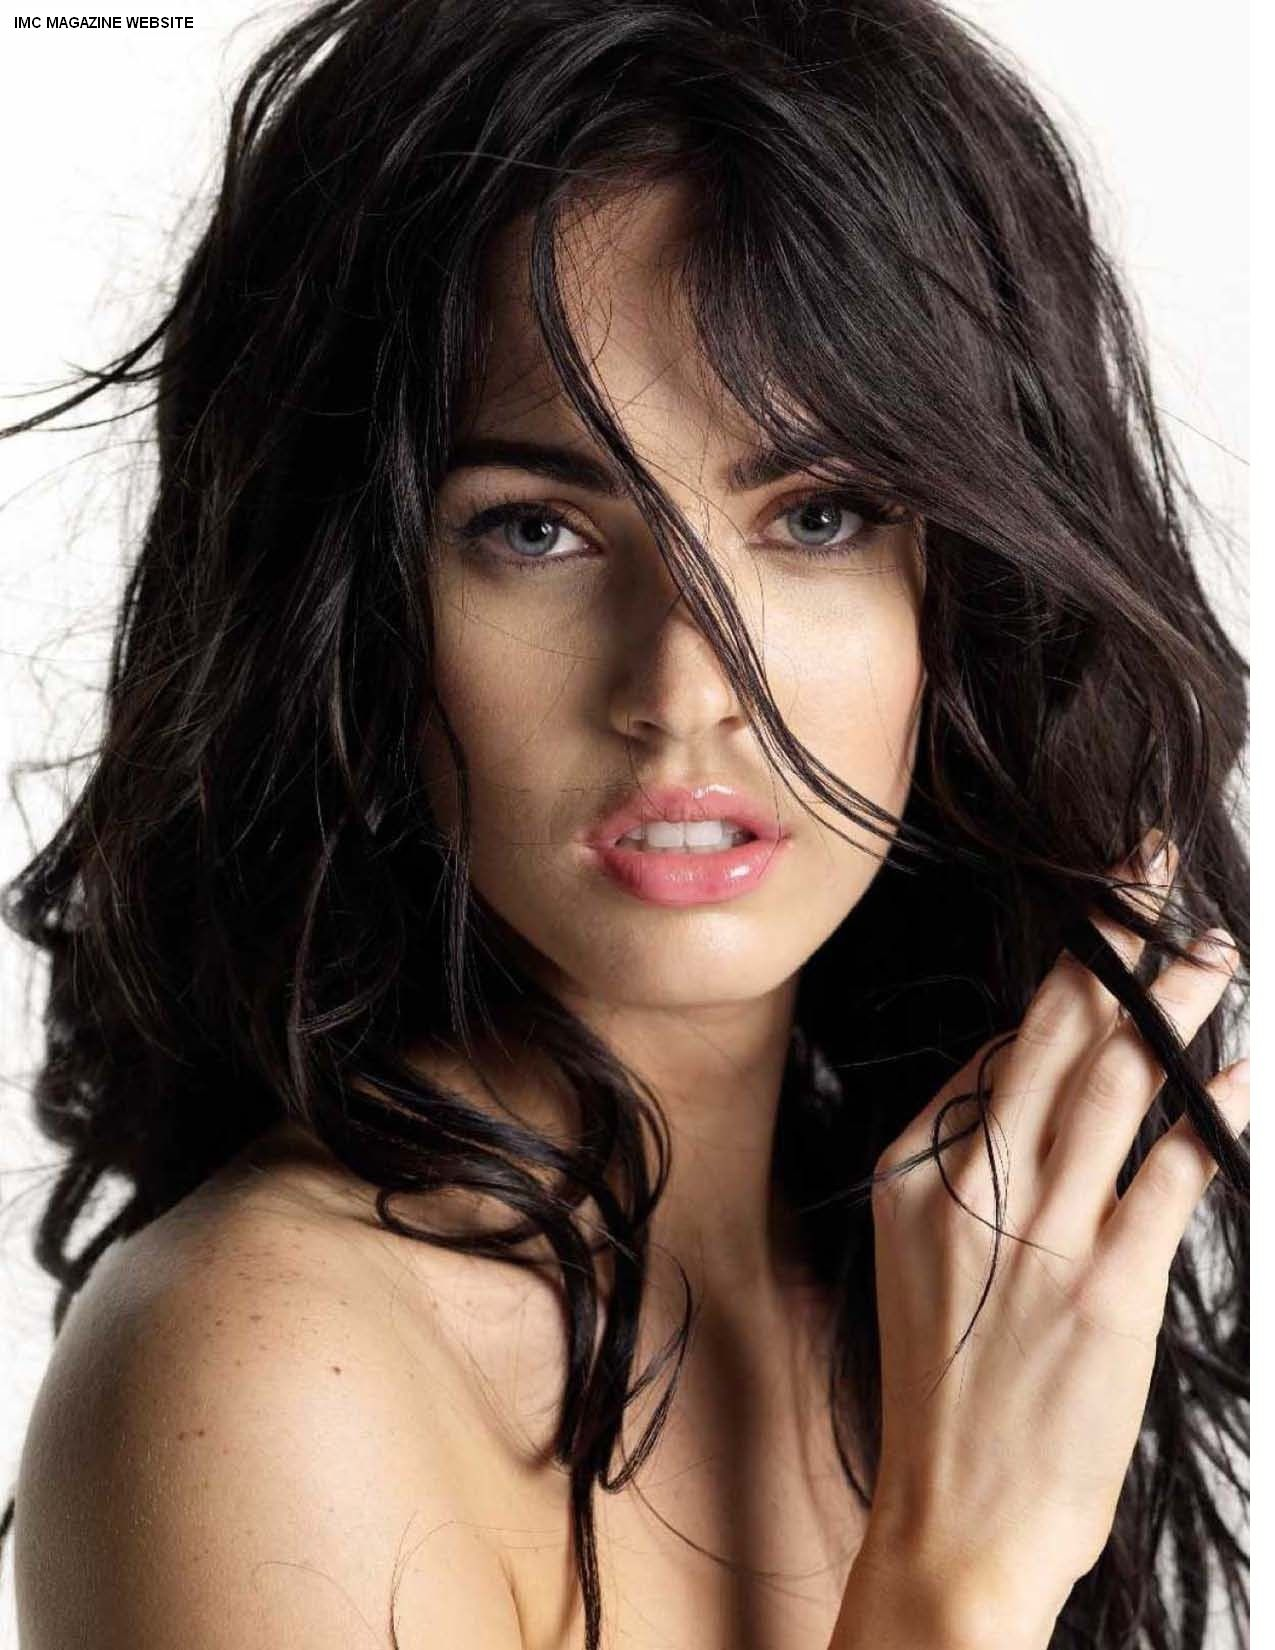 Are mistaken. Megan fox completely nude think